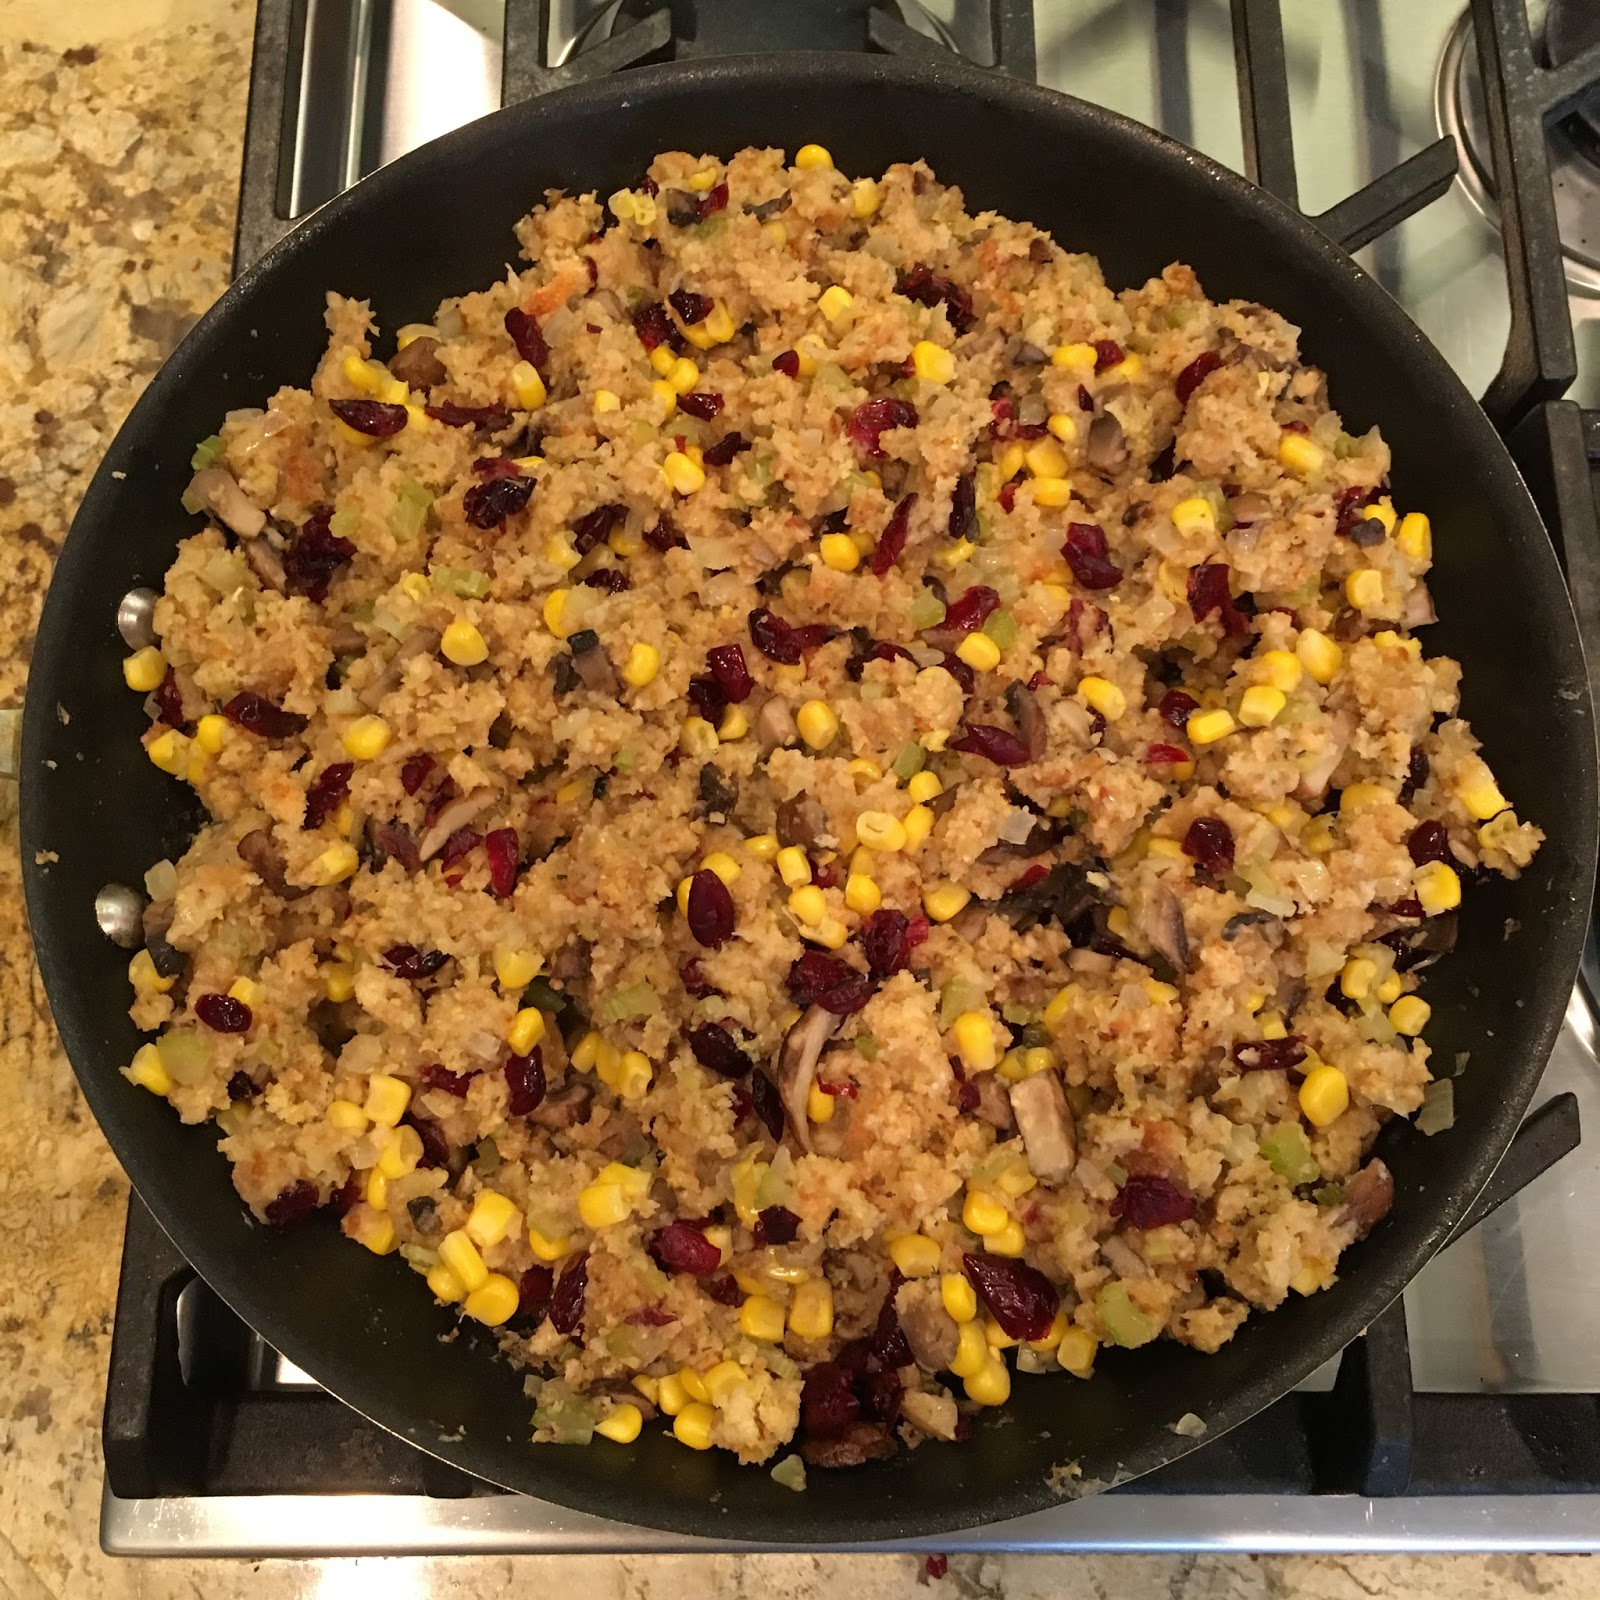 My Most Requested Recipes: Cornbread Dressing